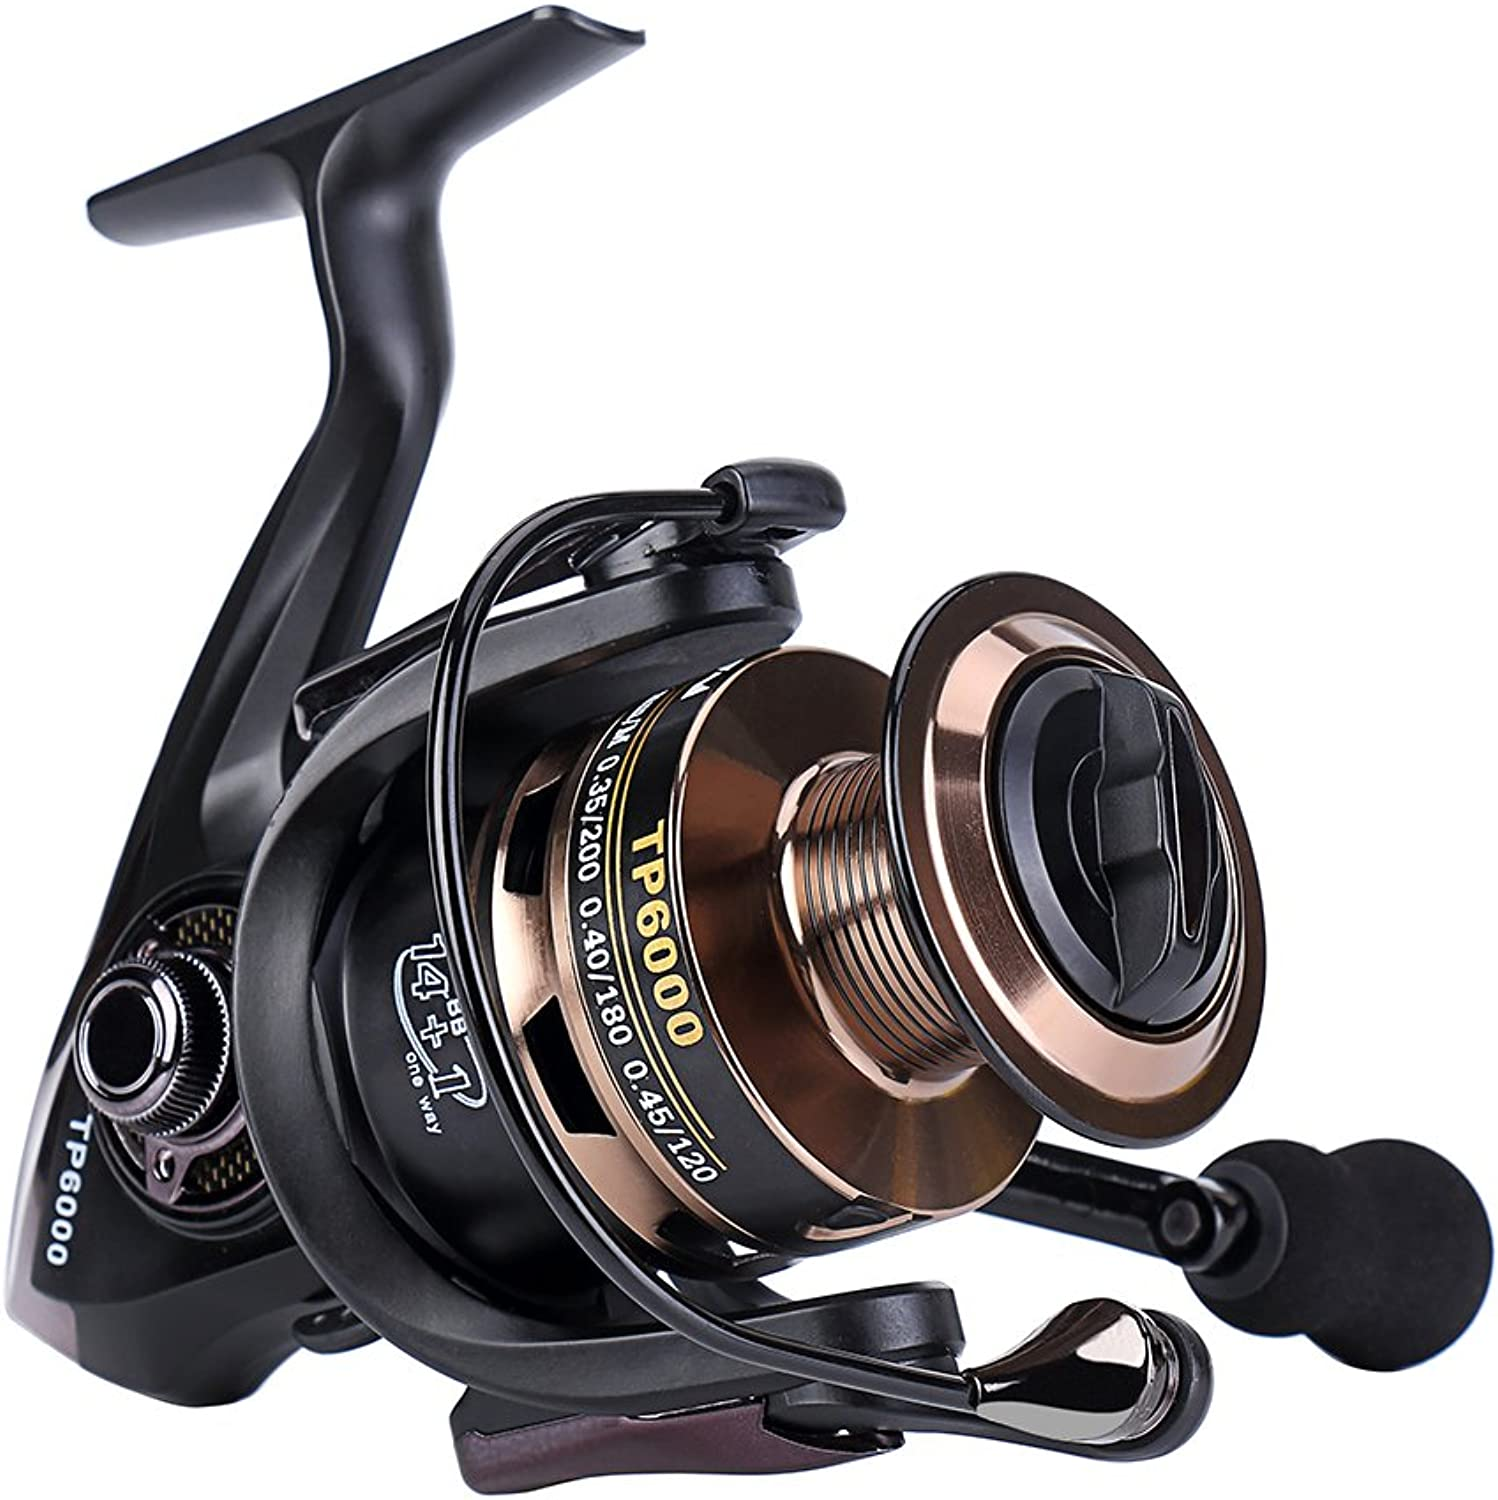 Gosccess Spinning Reel Left Right Interchangeable Spinning Fishing Reels 14+1 BB Saltwater Fishing Reel